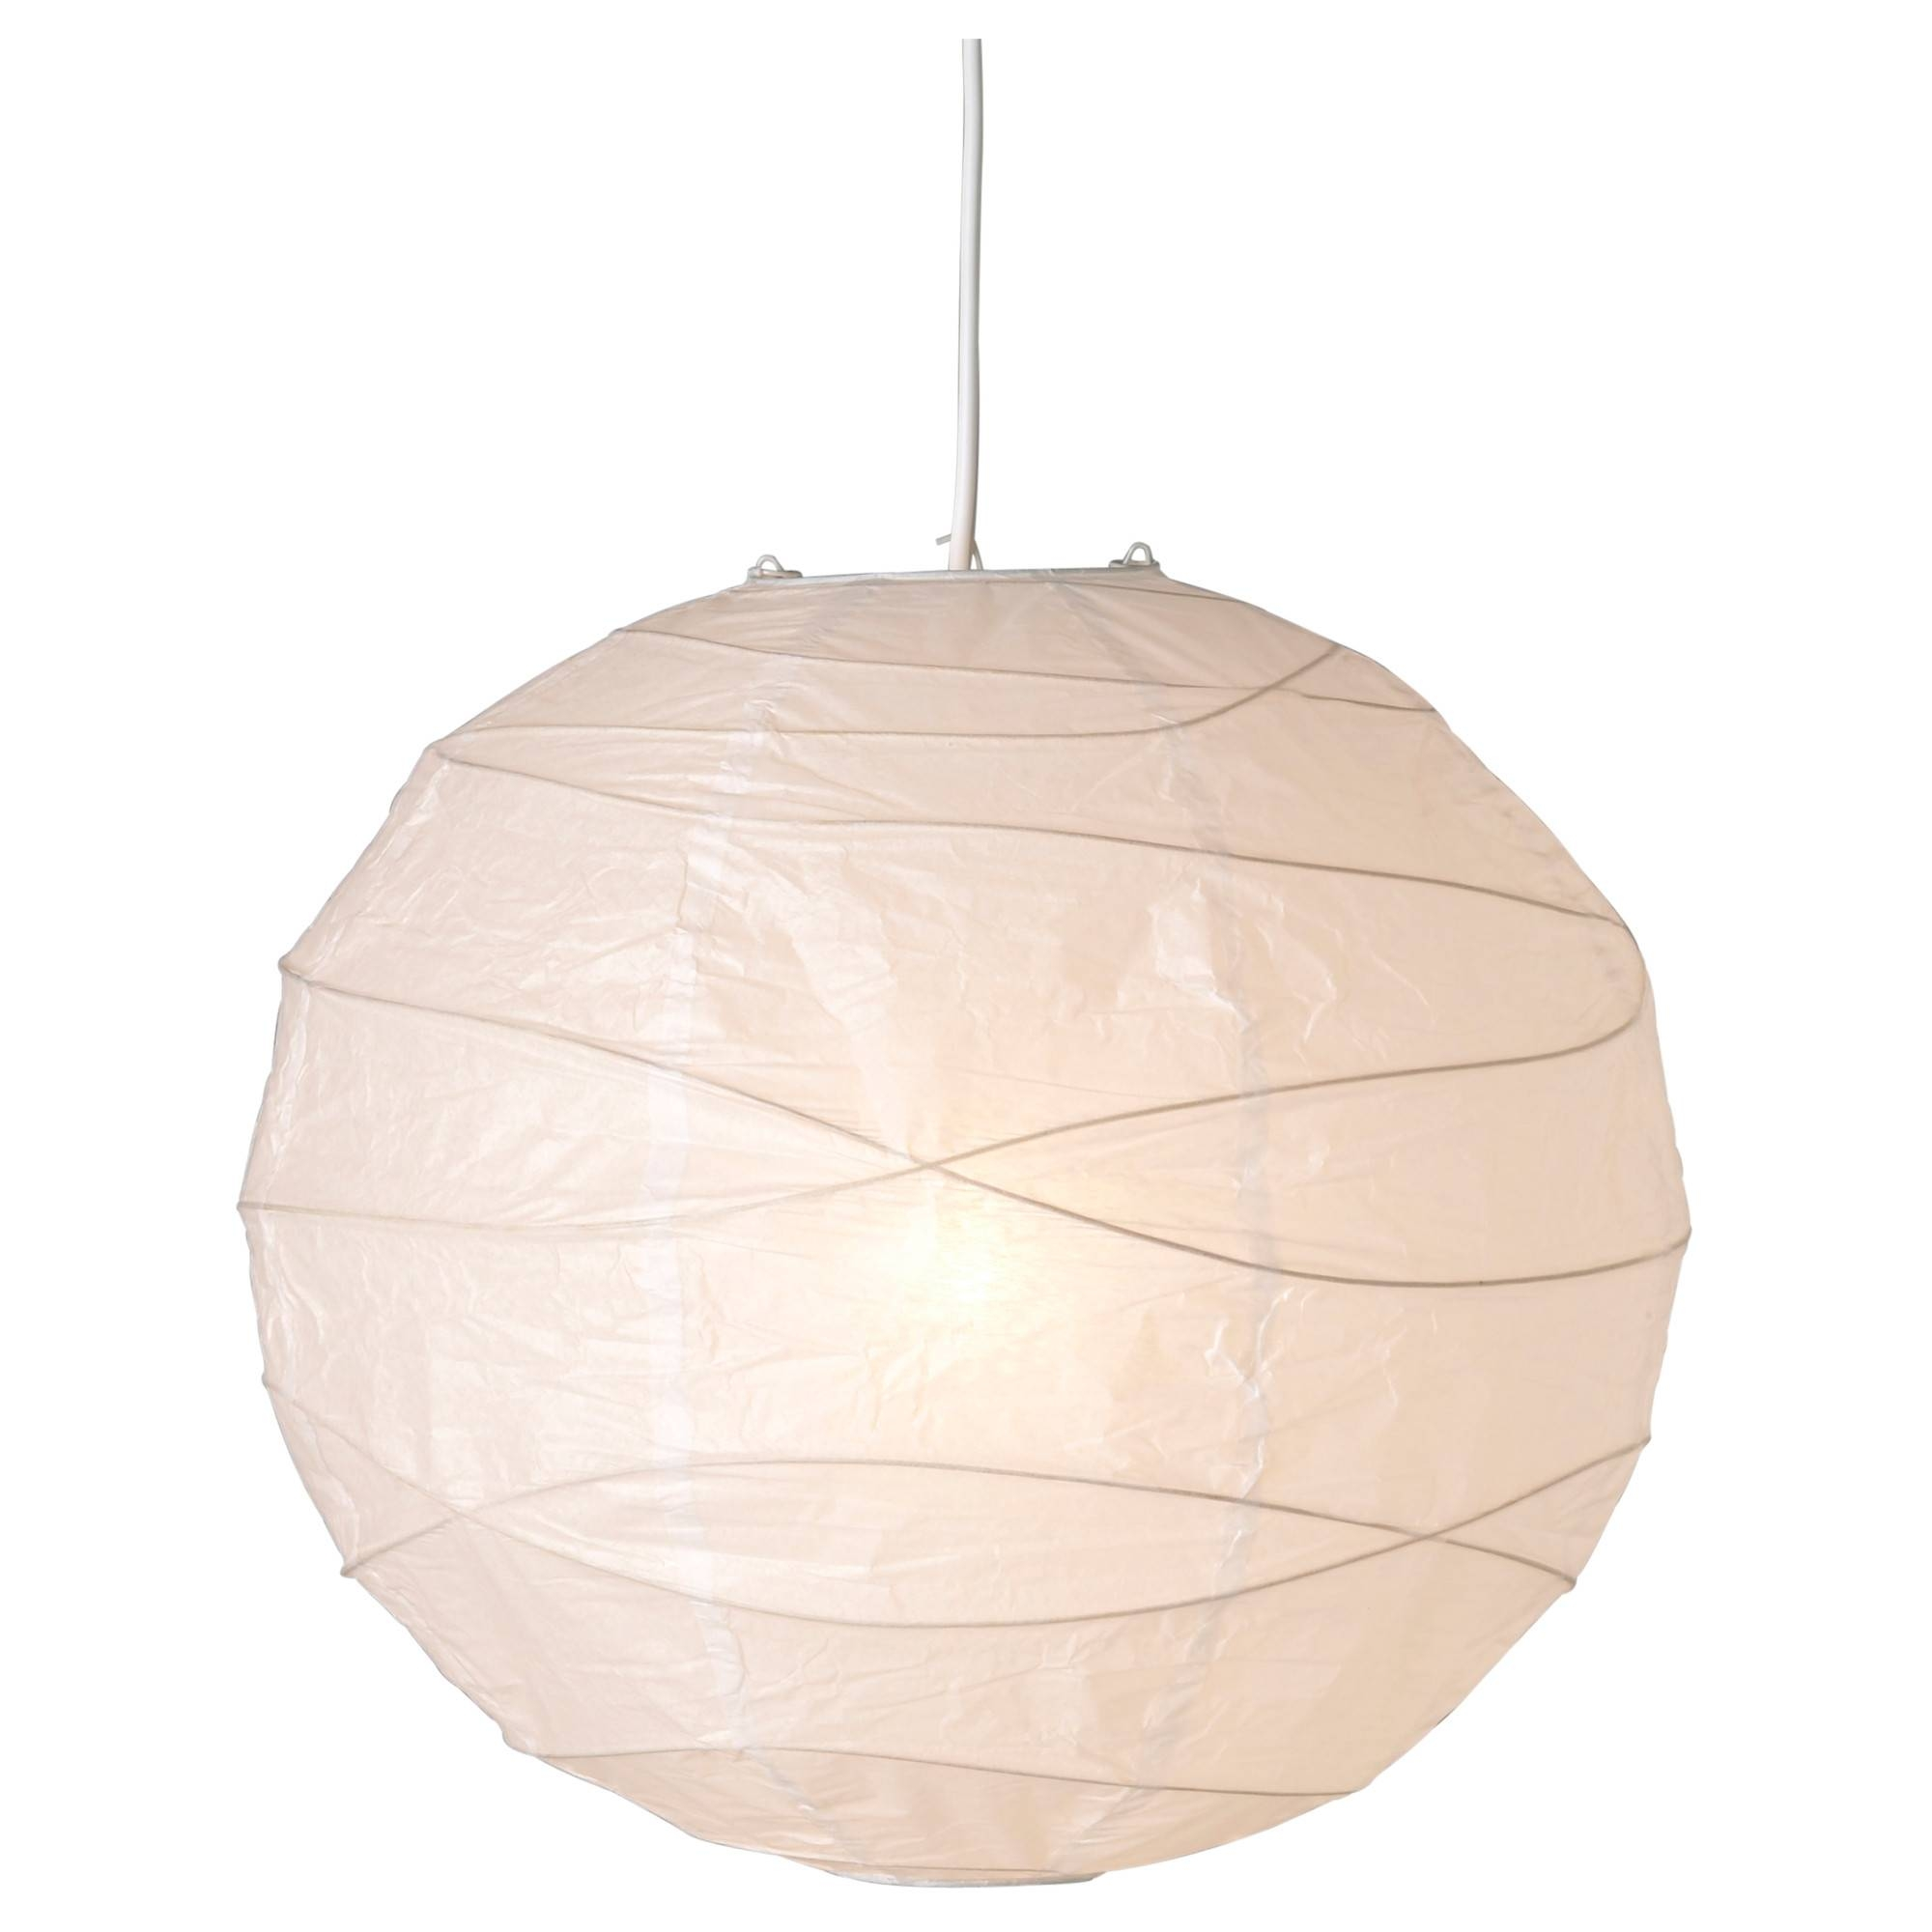 Regolit Pendant Lamp Shade - Ikea throughout Ikea Pendant Lights (Image 13 of 15)